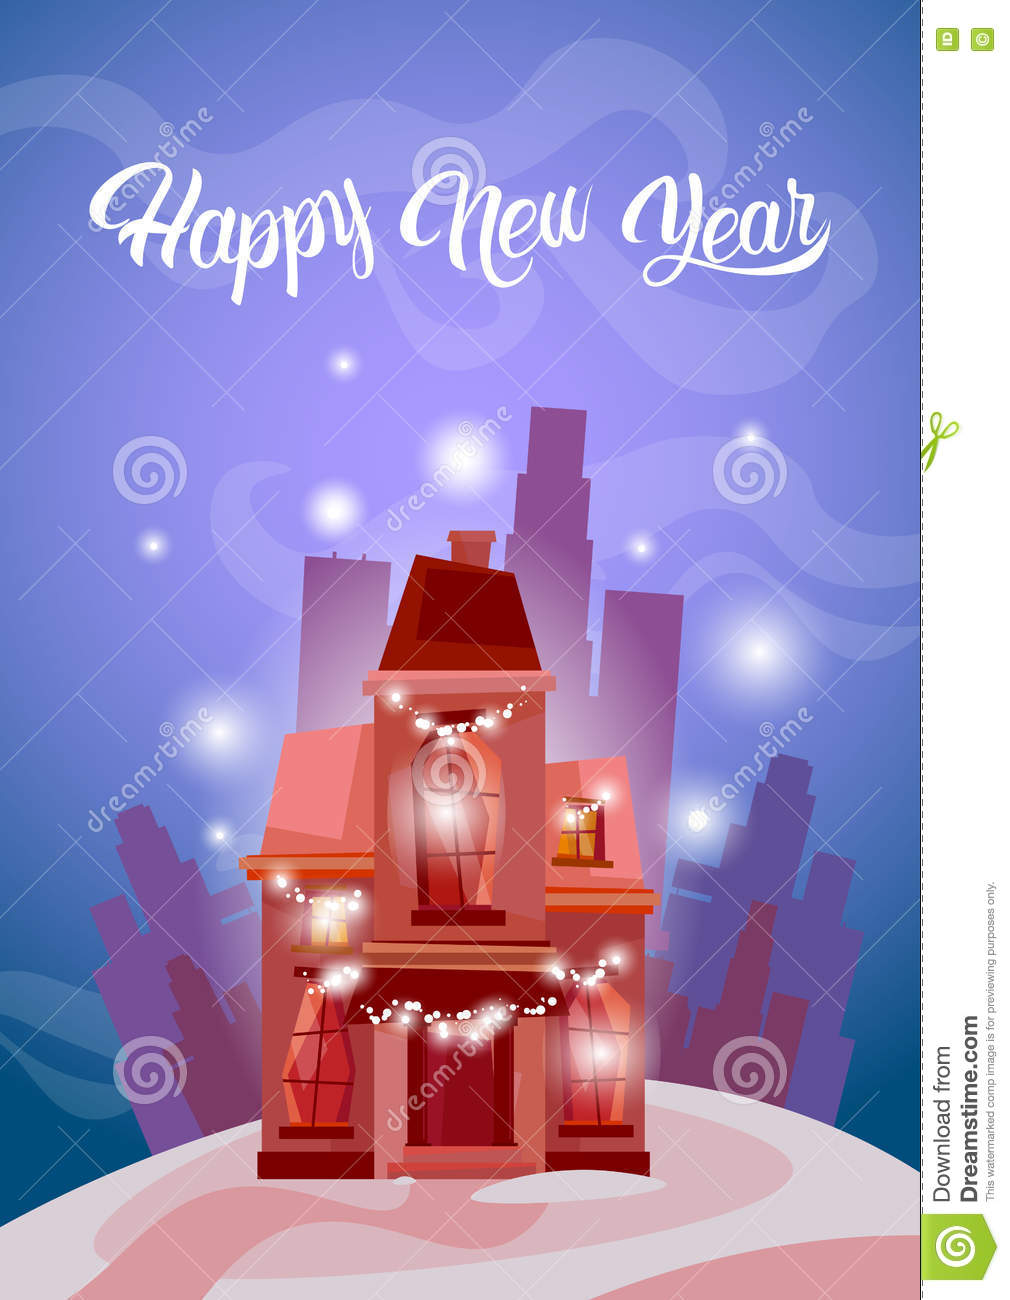 snowy house happy new year merry christmas greeting card banner